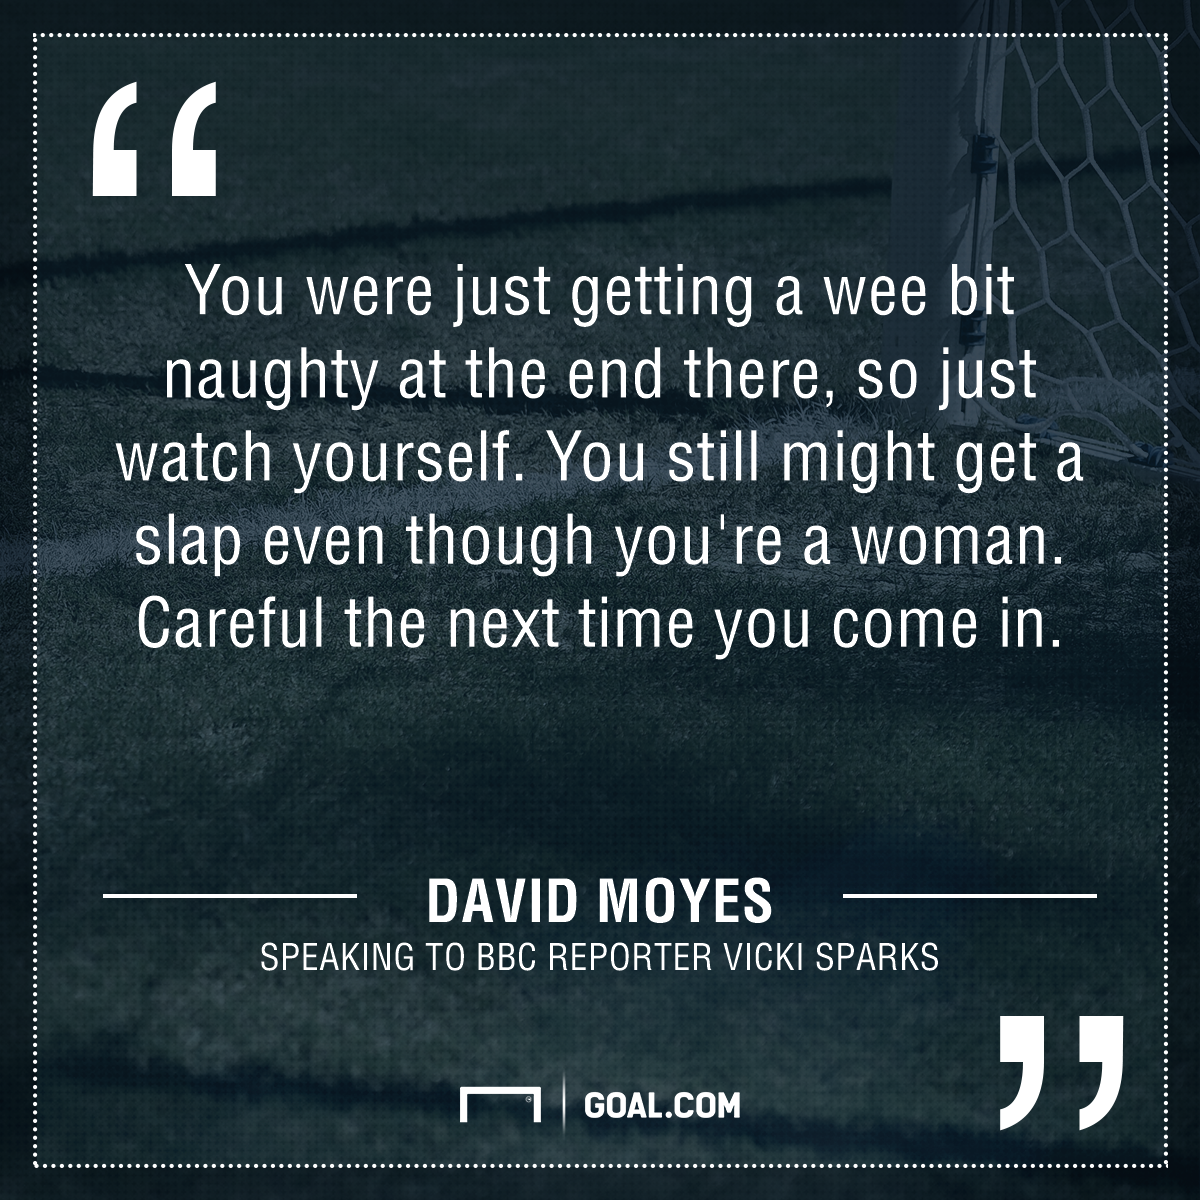 Moyes PS